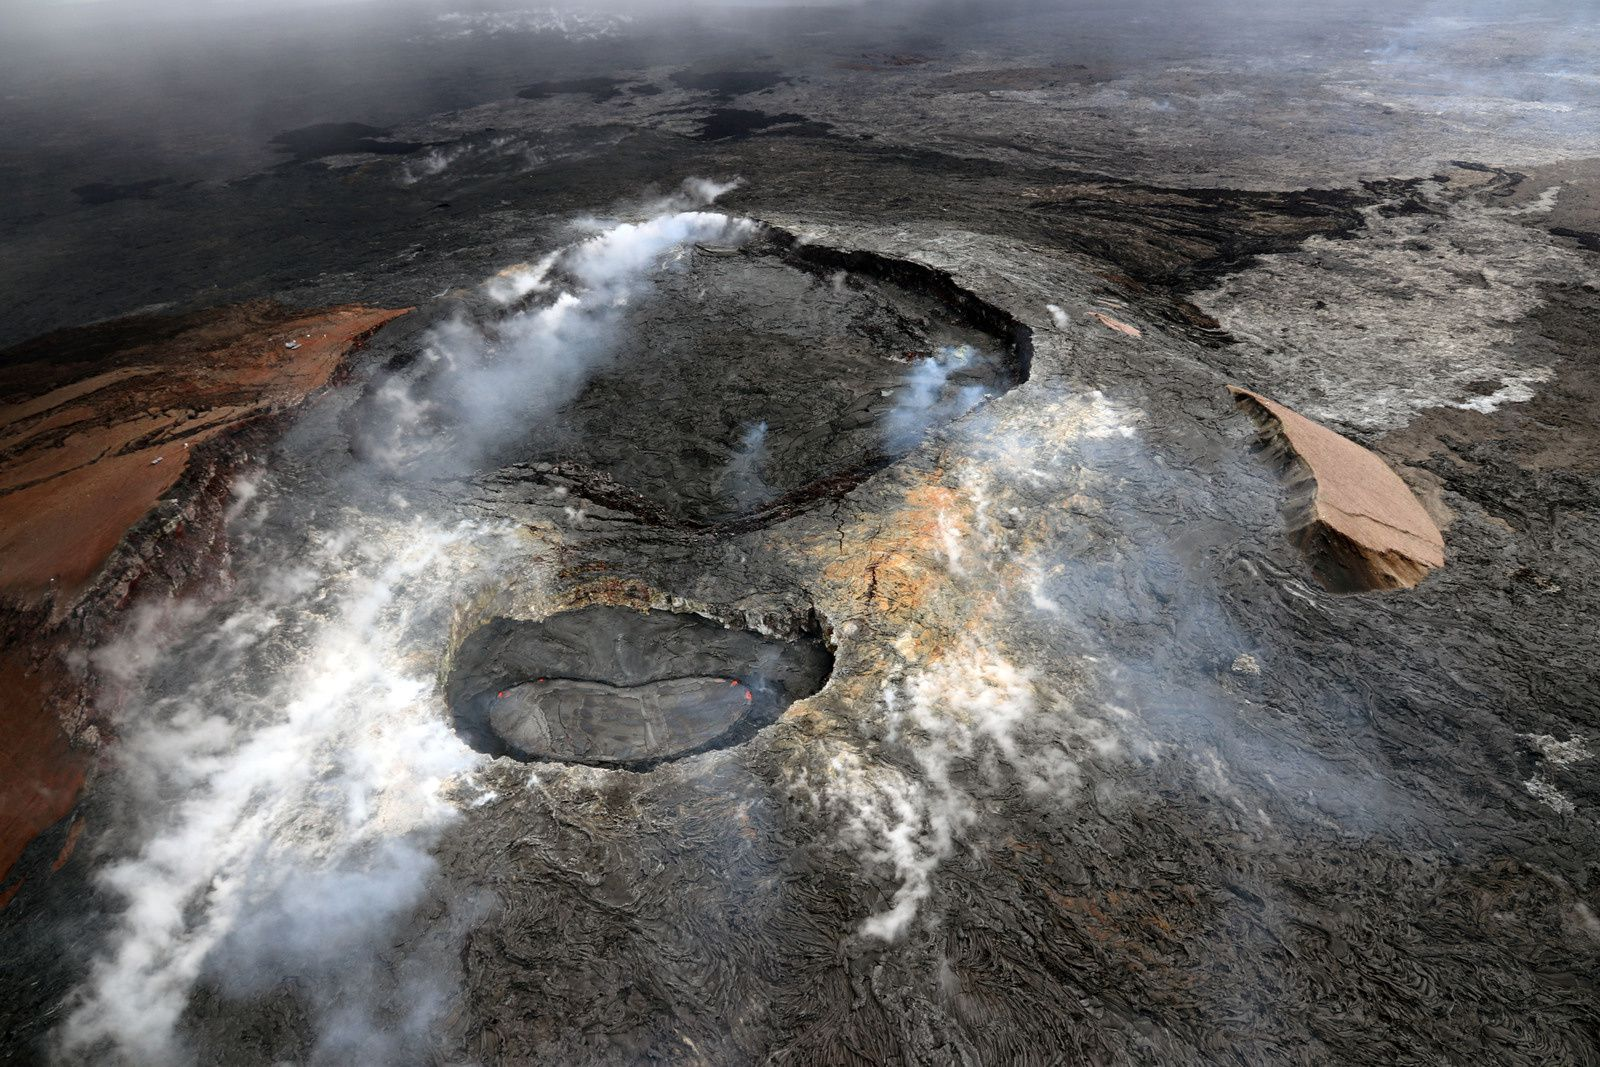 Kilauea - the top of Pu'u O'o with the main crater in the background, and the pit in the foreground. - photo 18.04.2018 HVO - USGS